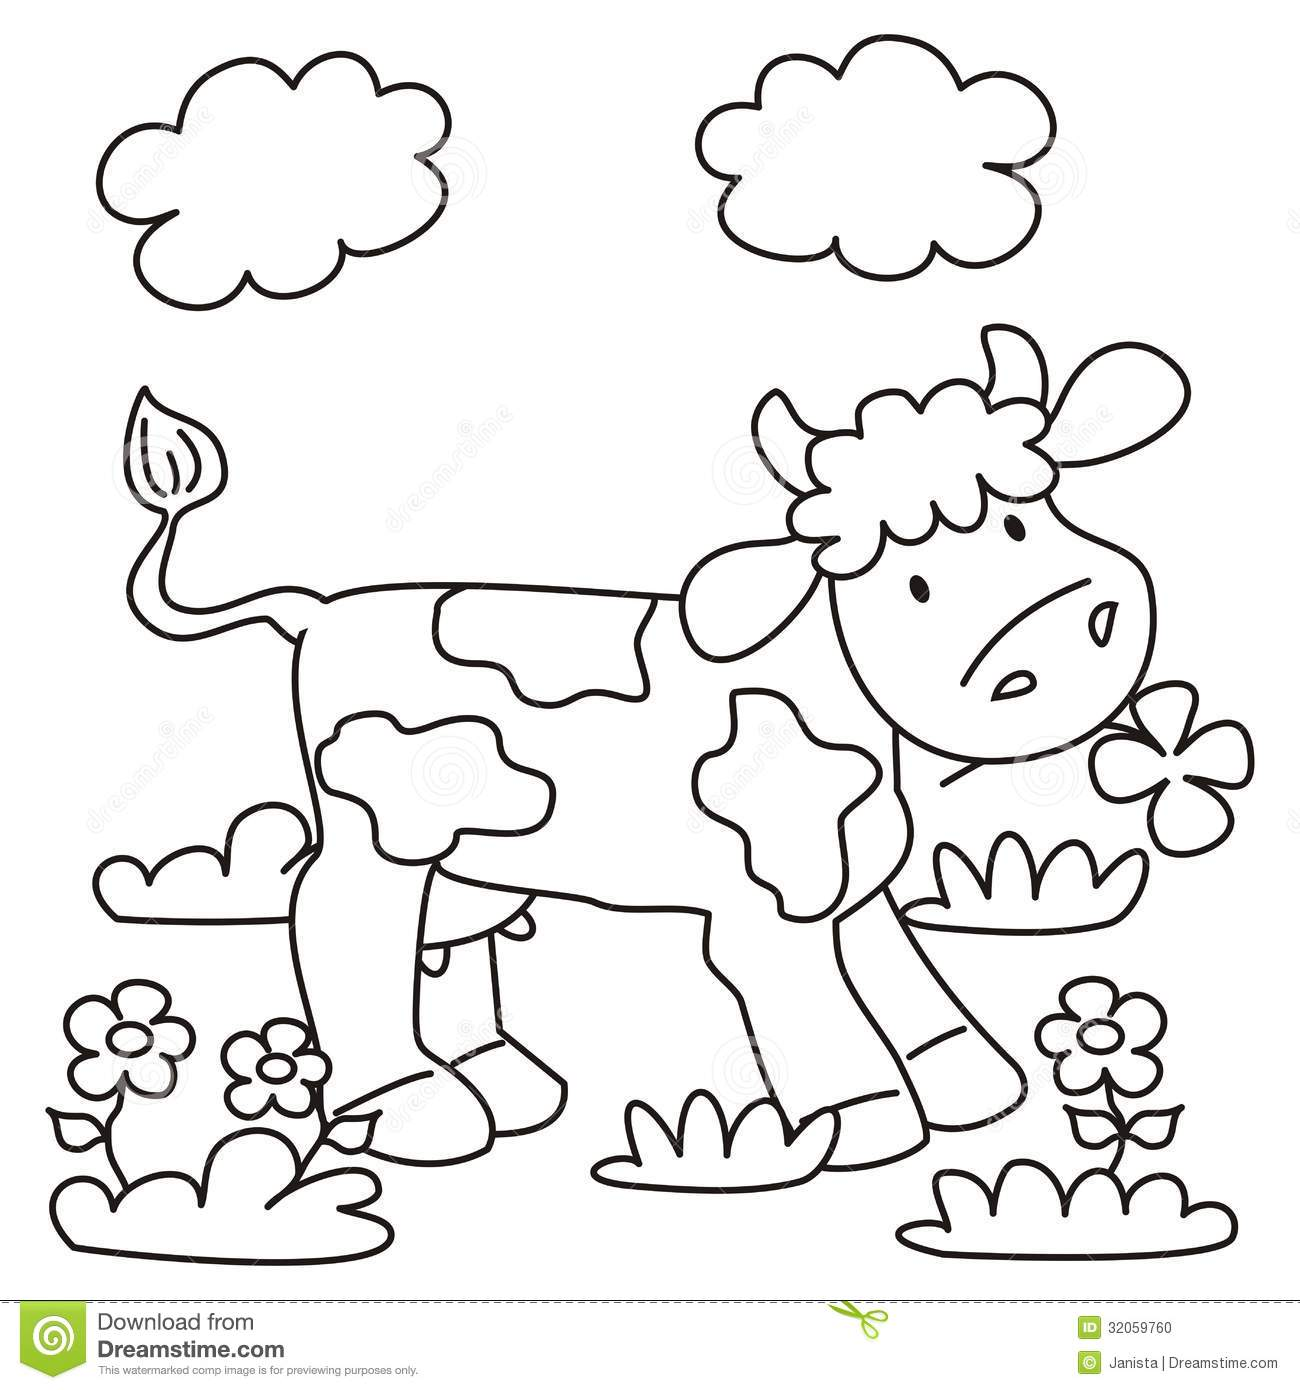 meadow animals coloring pages - photo#26